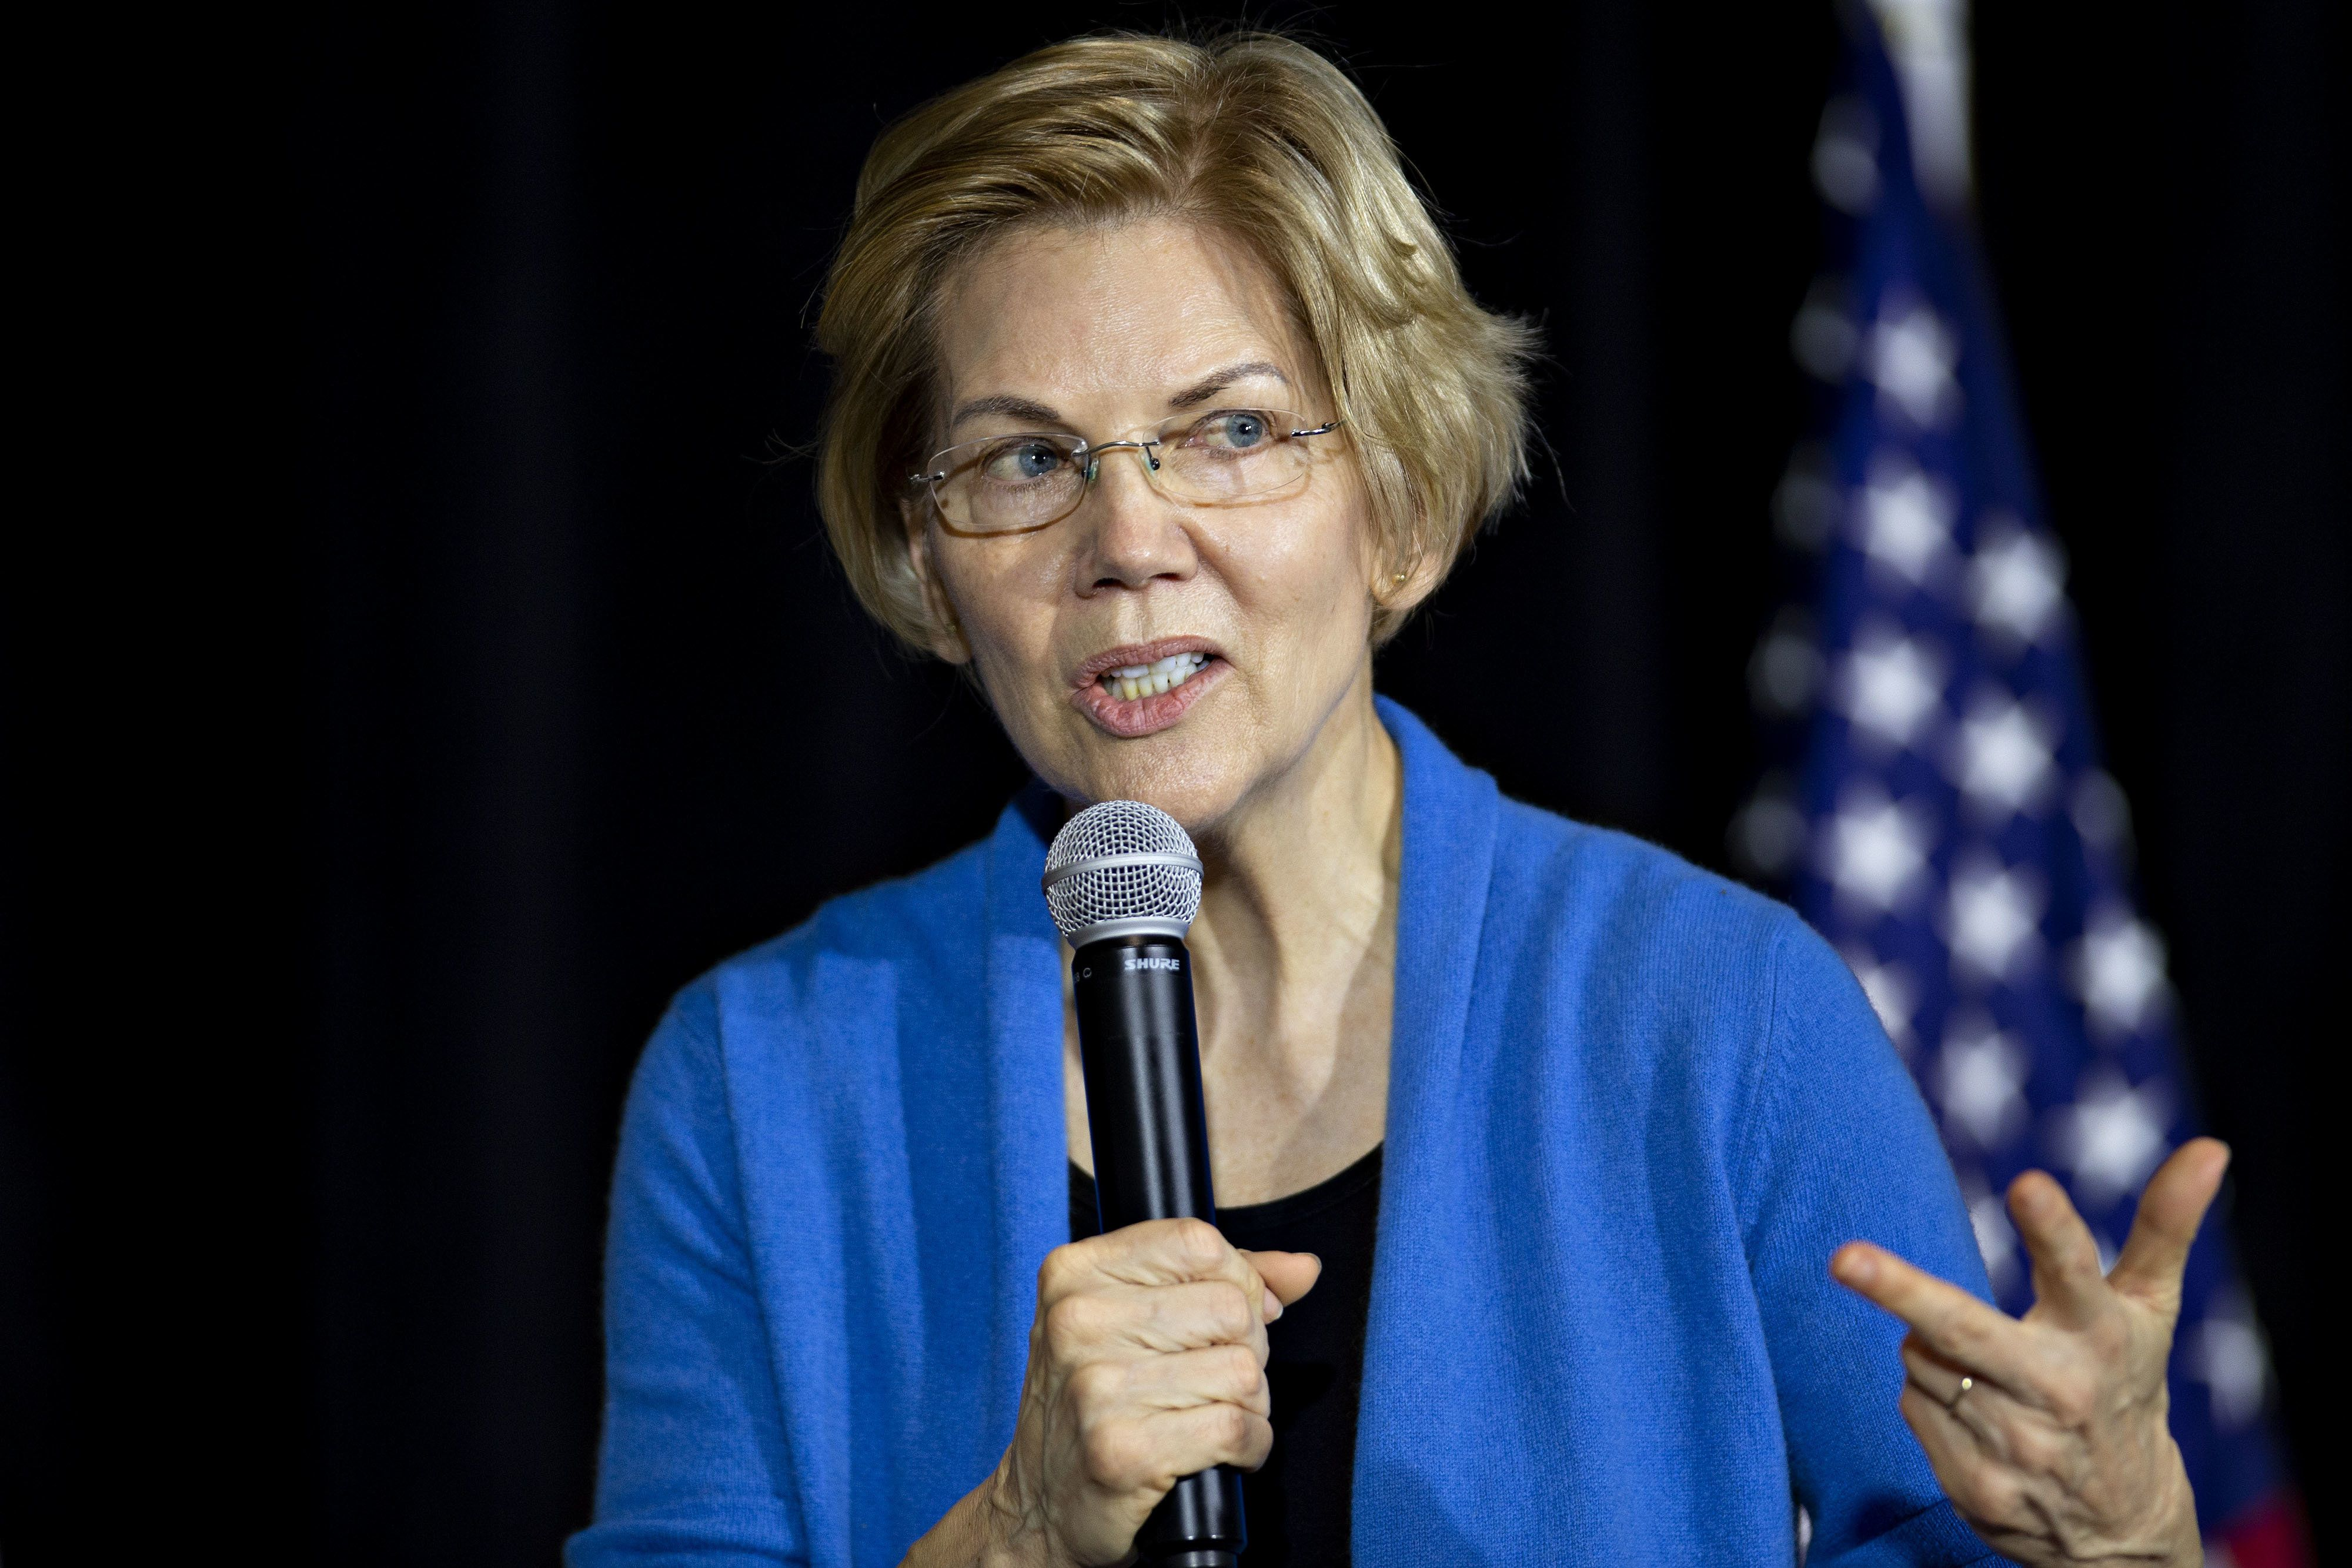 Senator Elizabeth Warren, a Democrat from Massachusetts and 2020 presidential candidate, speaks during a campaign stop in Cedar Rapids, Iowa, U.S., on Sunday, Feb. 10, 2019. Warren made it official on Saturday: She's running for president to change a country she says is 'rigged by the wealthy.' Photographer: Daniel Acker/Bloomberg via Getty Images